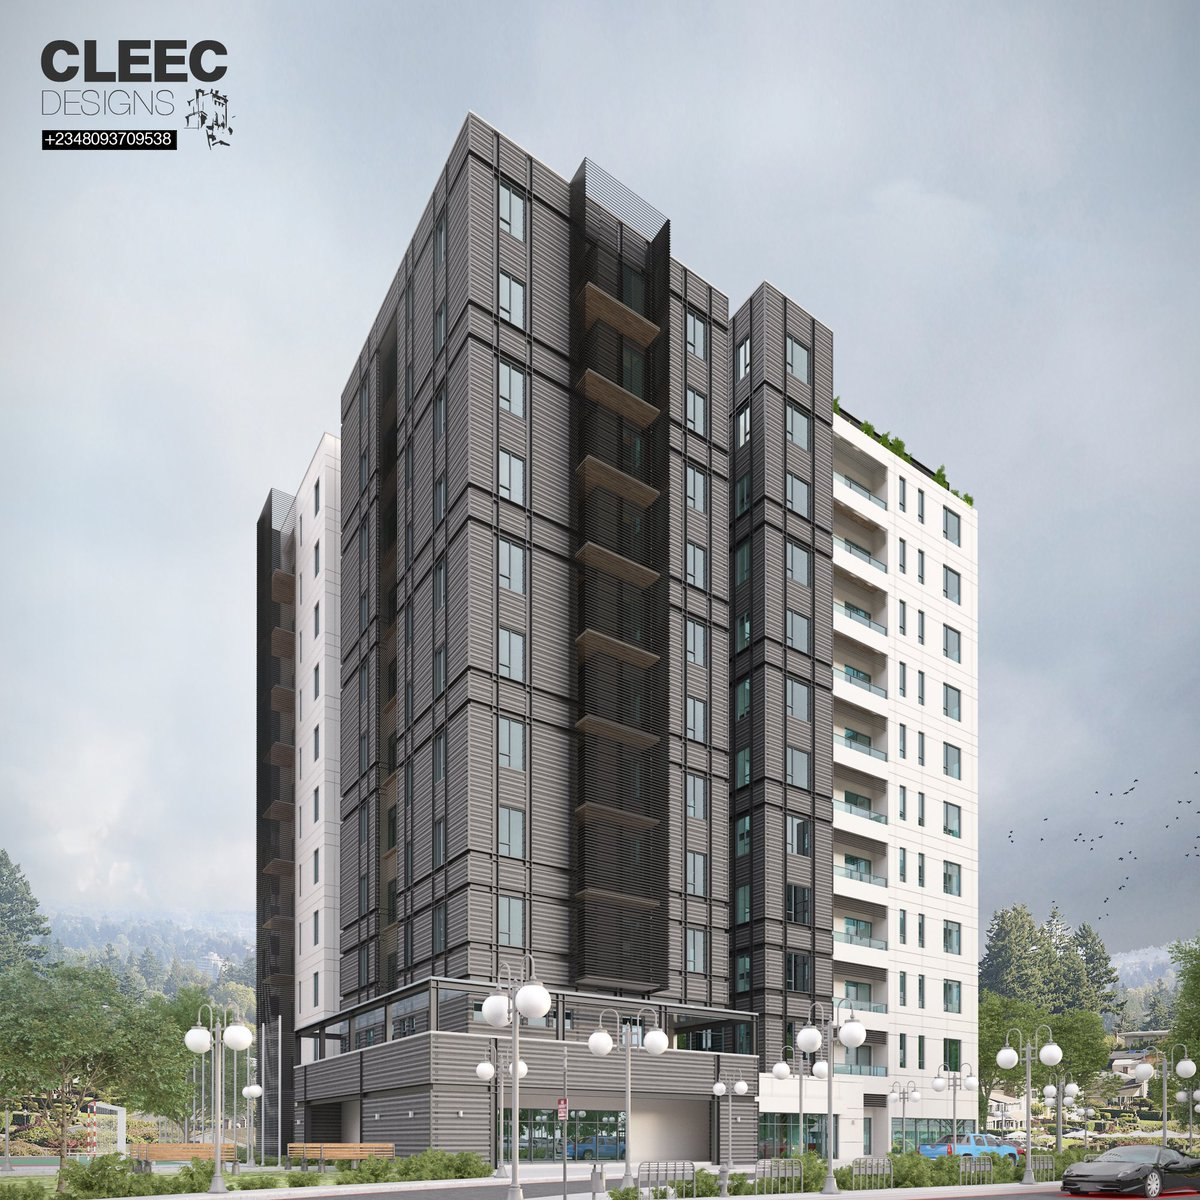 Architektur Rendering Photoshop Cleec Designs Cleecdesigns Twitter